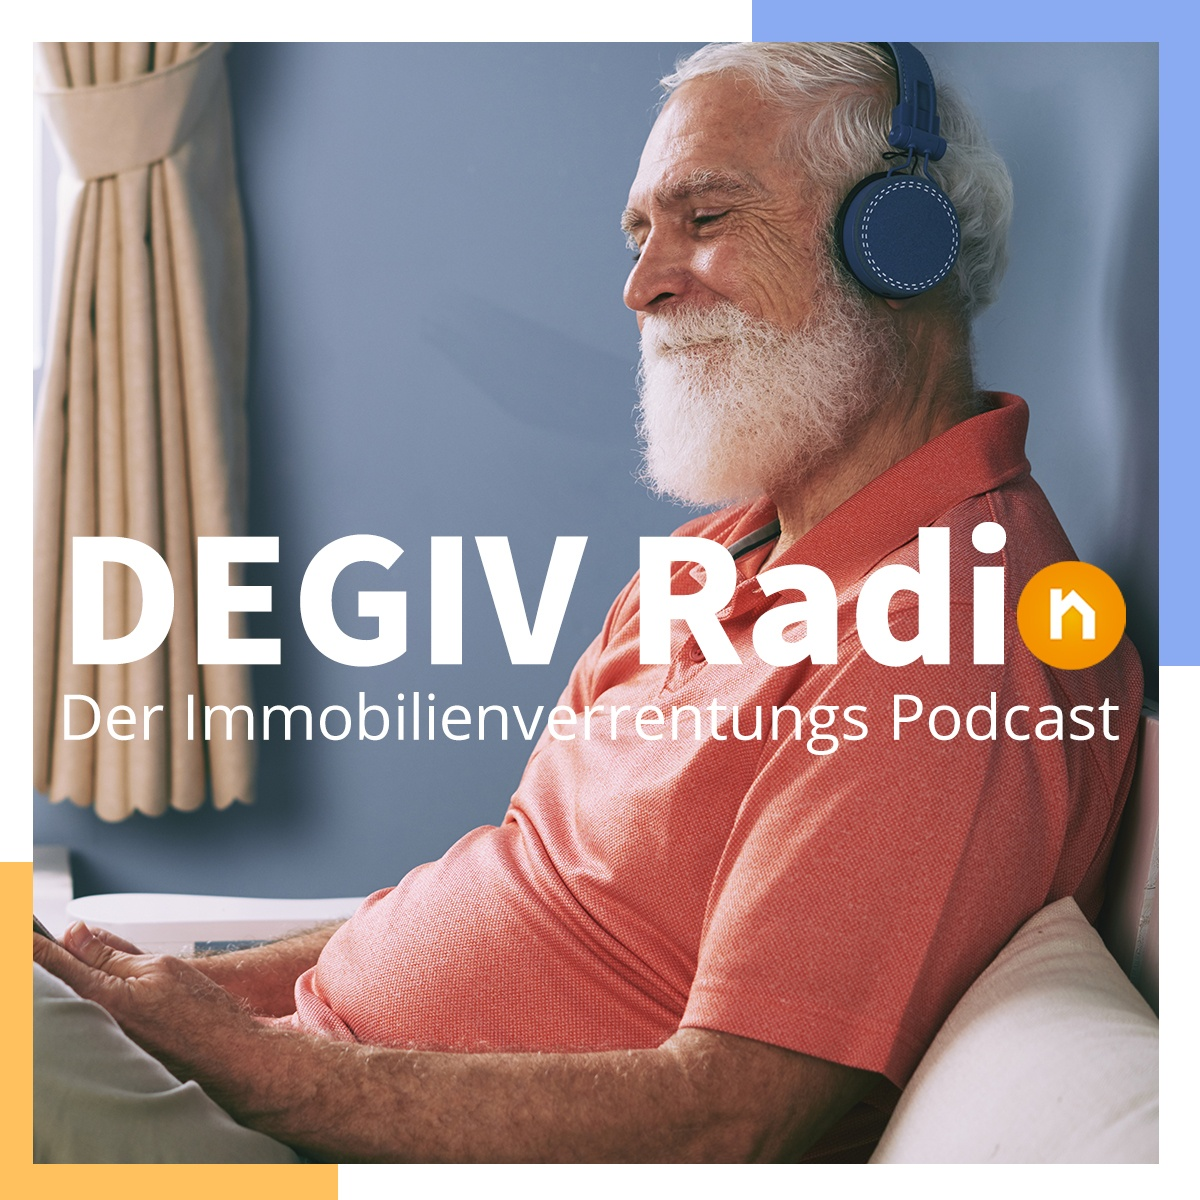 DEGIV Radio - Der Immobilienverrentungs Podcast